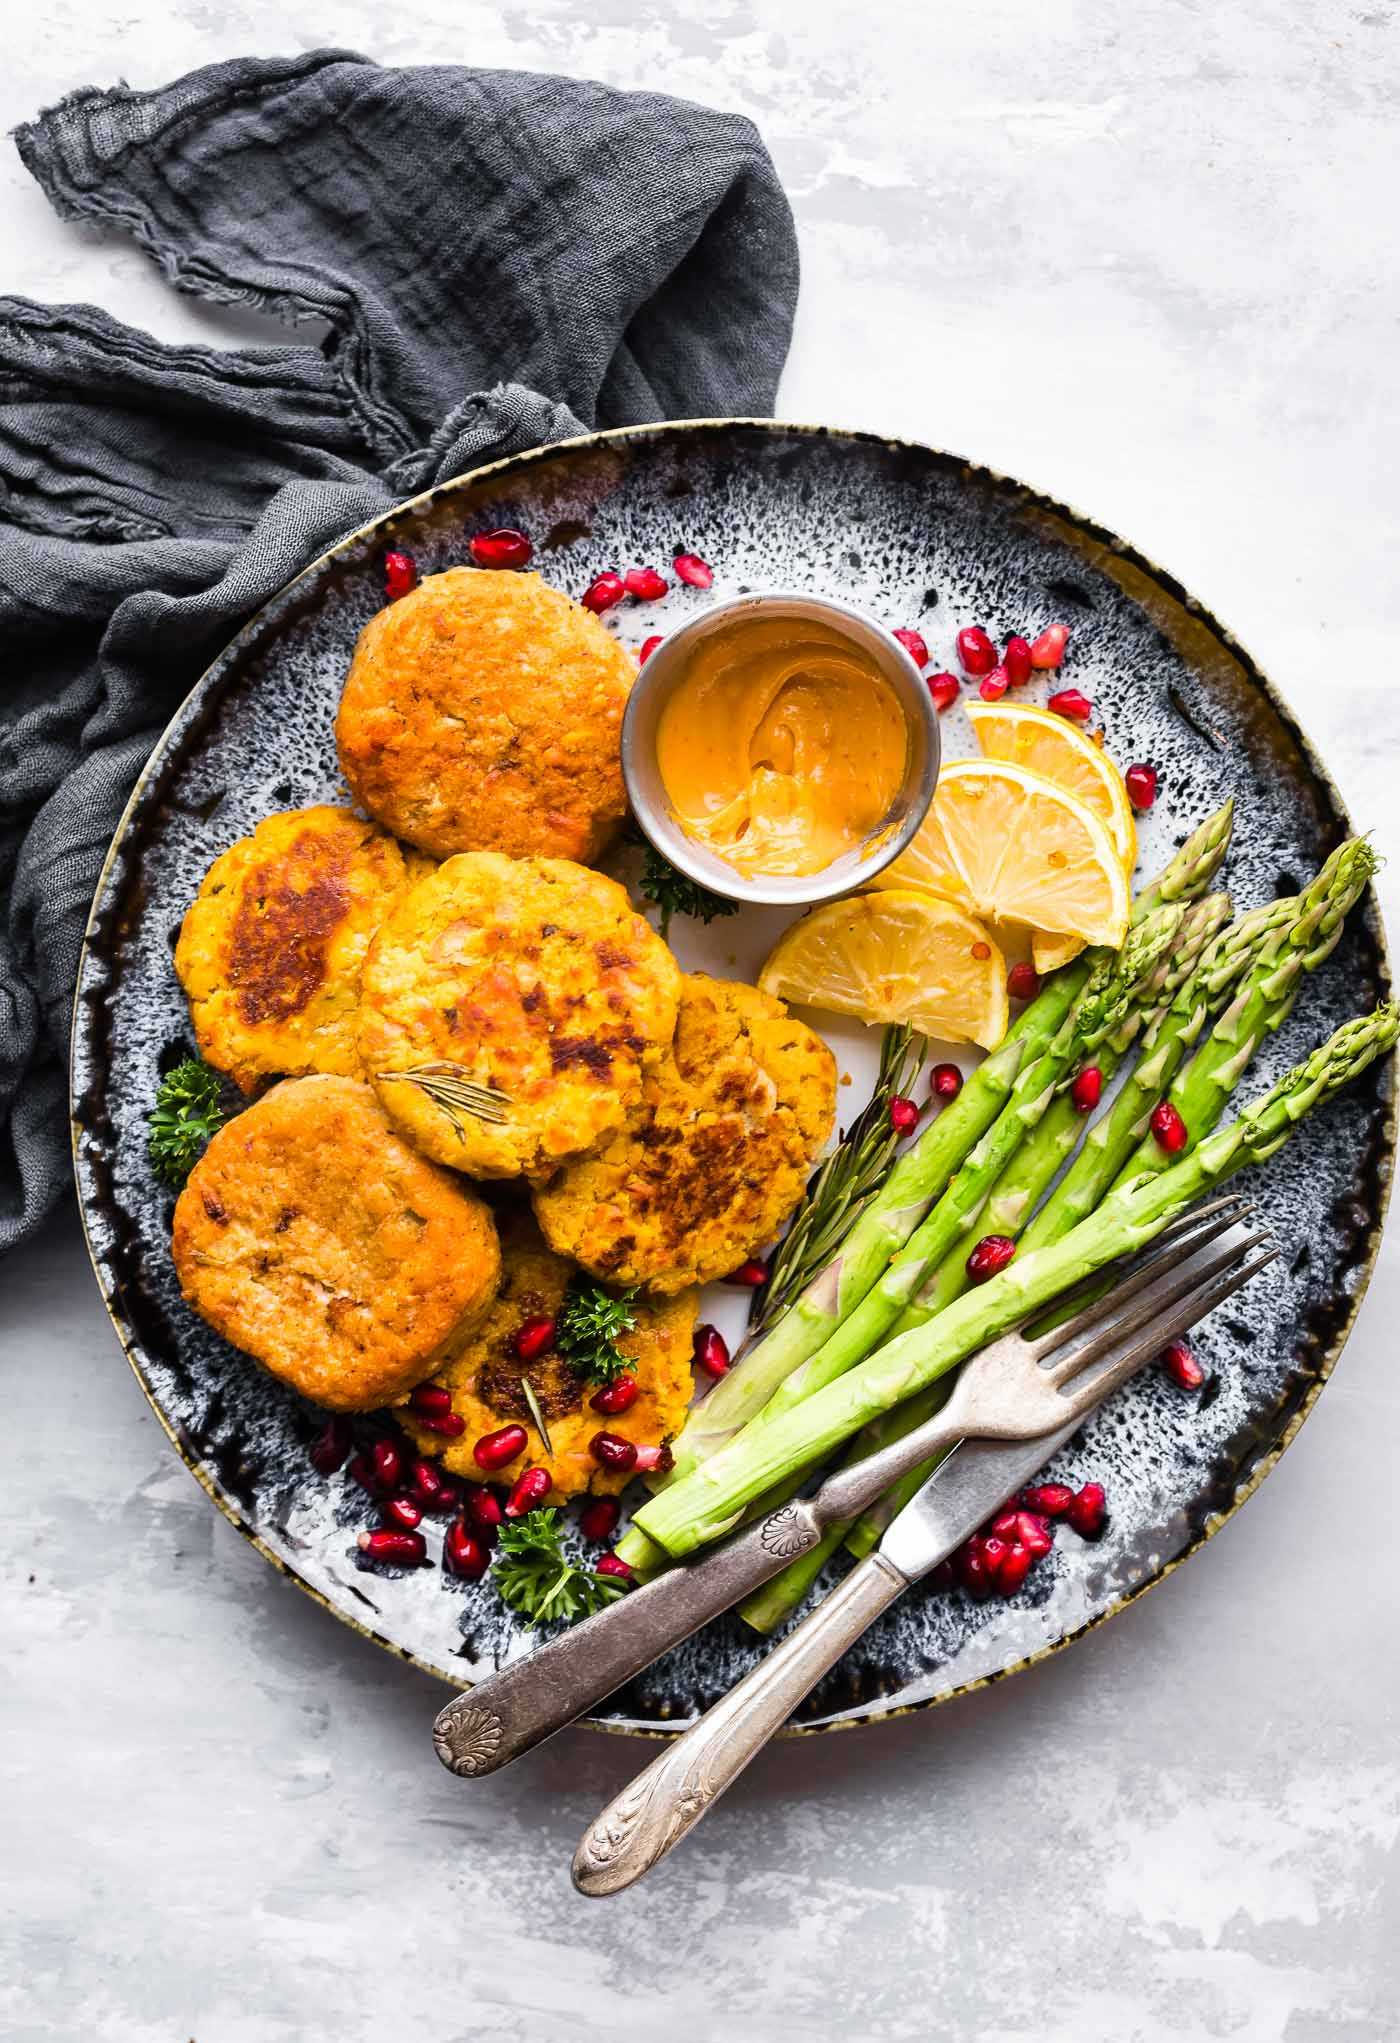 Paleo Salmon Cakes are quick, easy to make, delicious meal or appetizer!  These Salmon cakes are literally veggie packed and protein packed, not to mention whole30 friendly. No wasting leftovers here, just mix and throw on the skillet. Great for meal prep and freezer friendly.